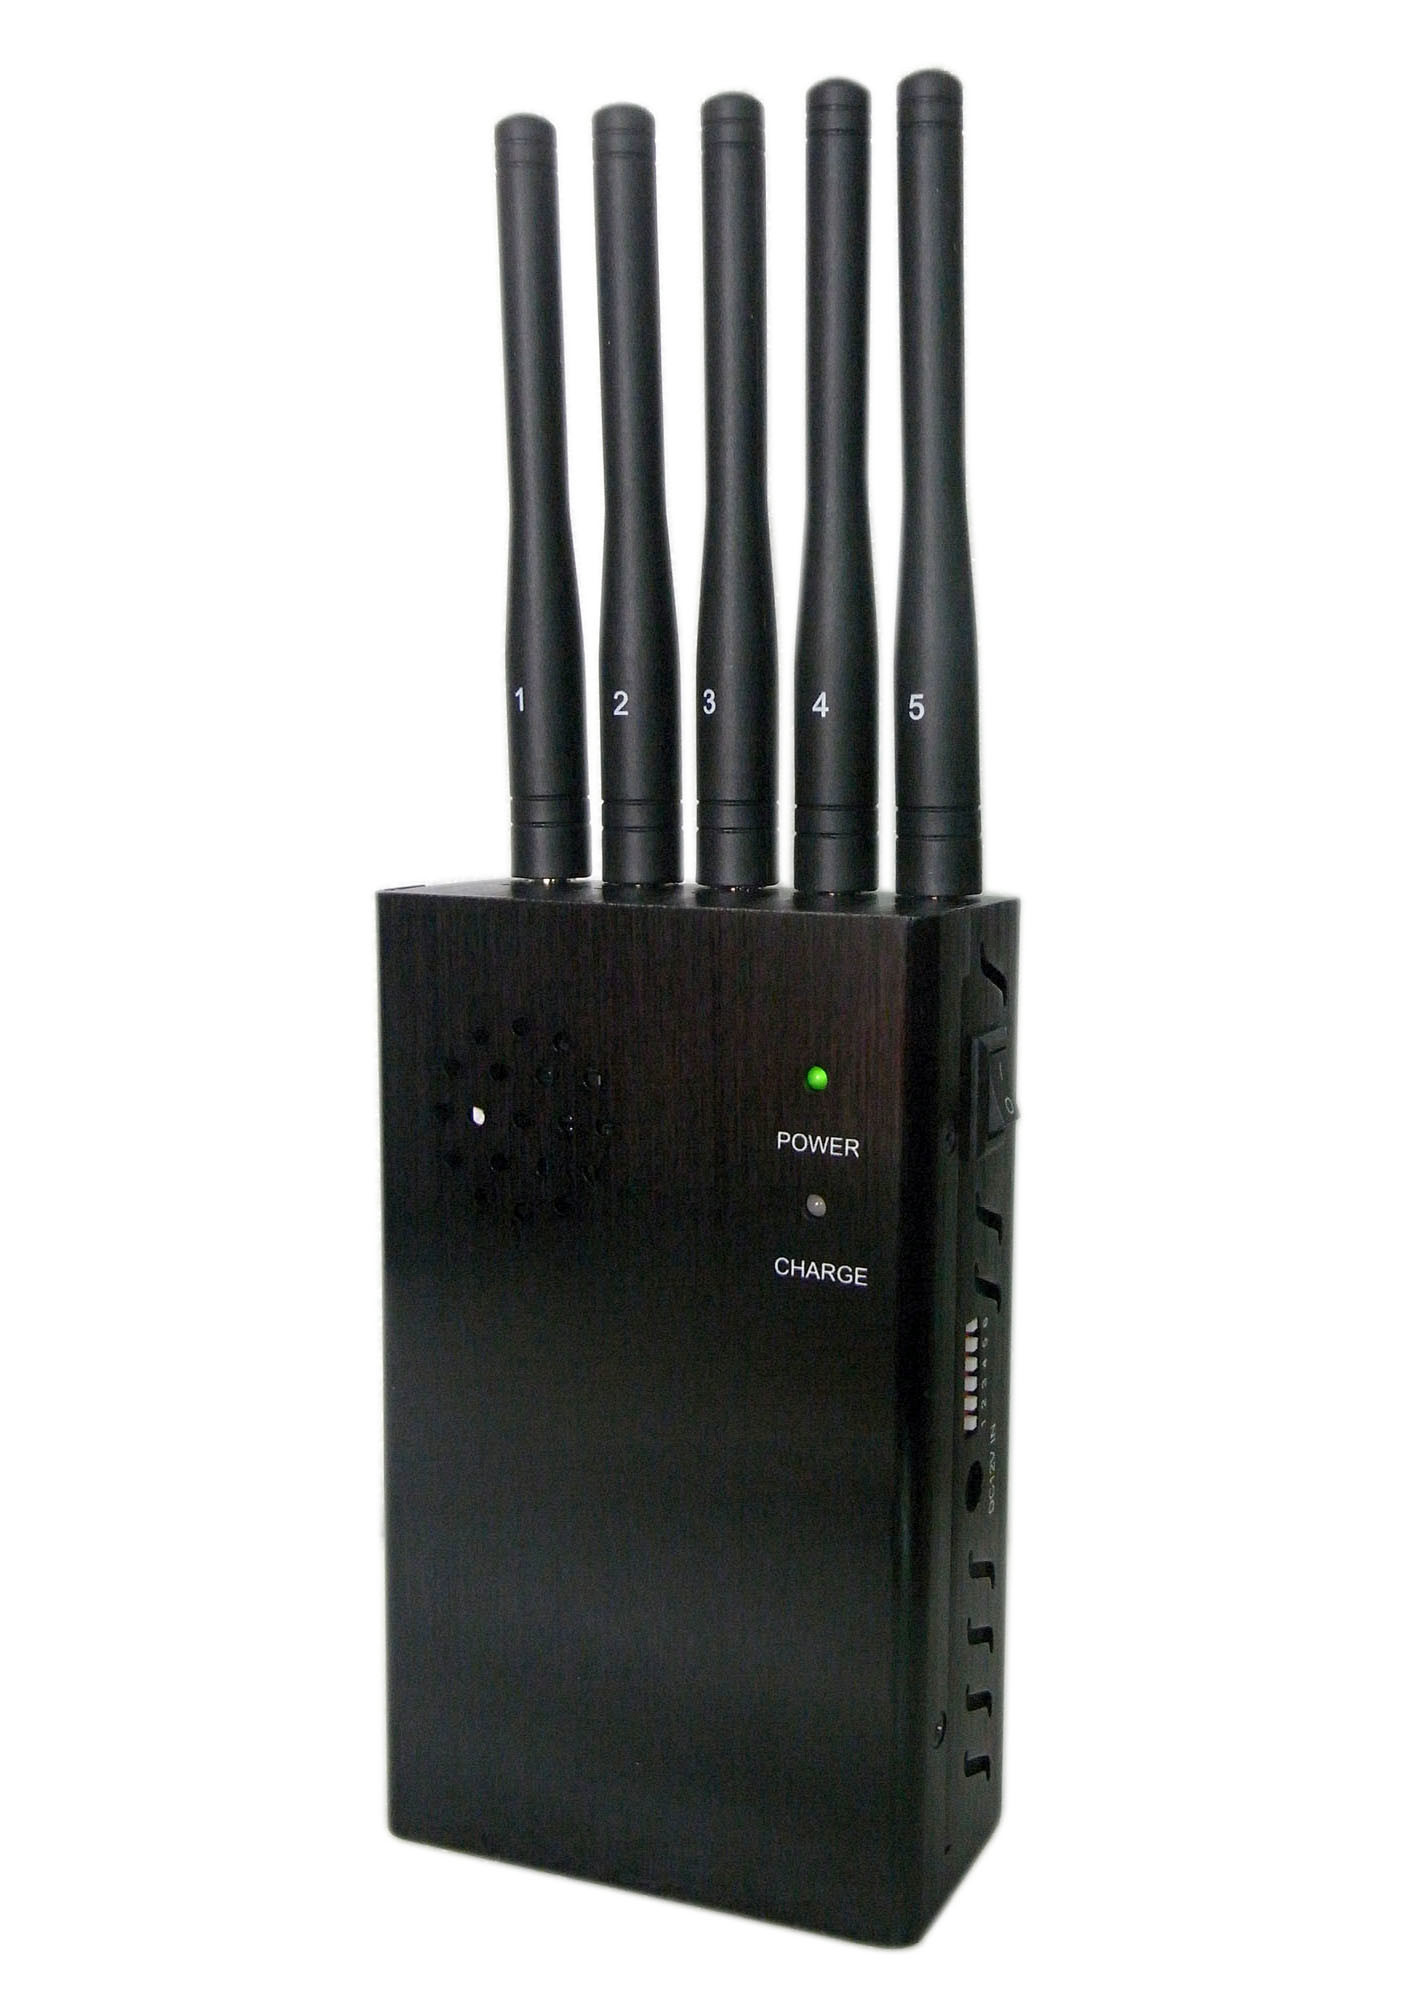 purchase a gps jammer hackerf